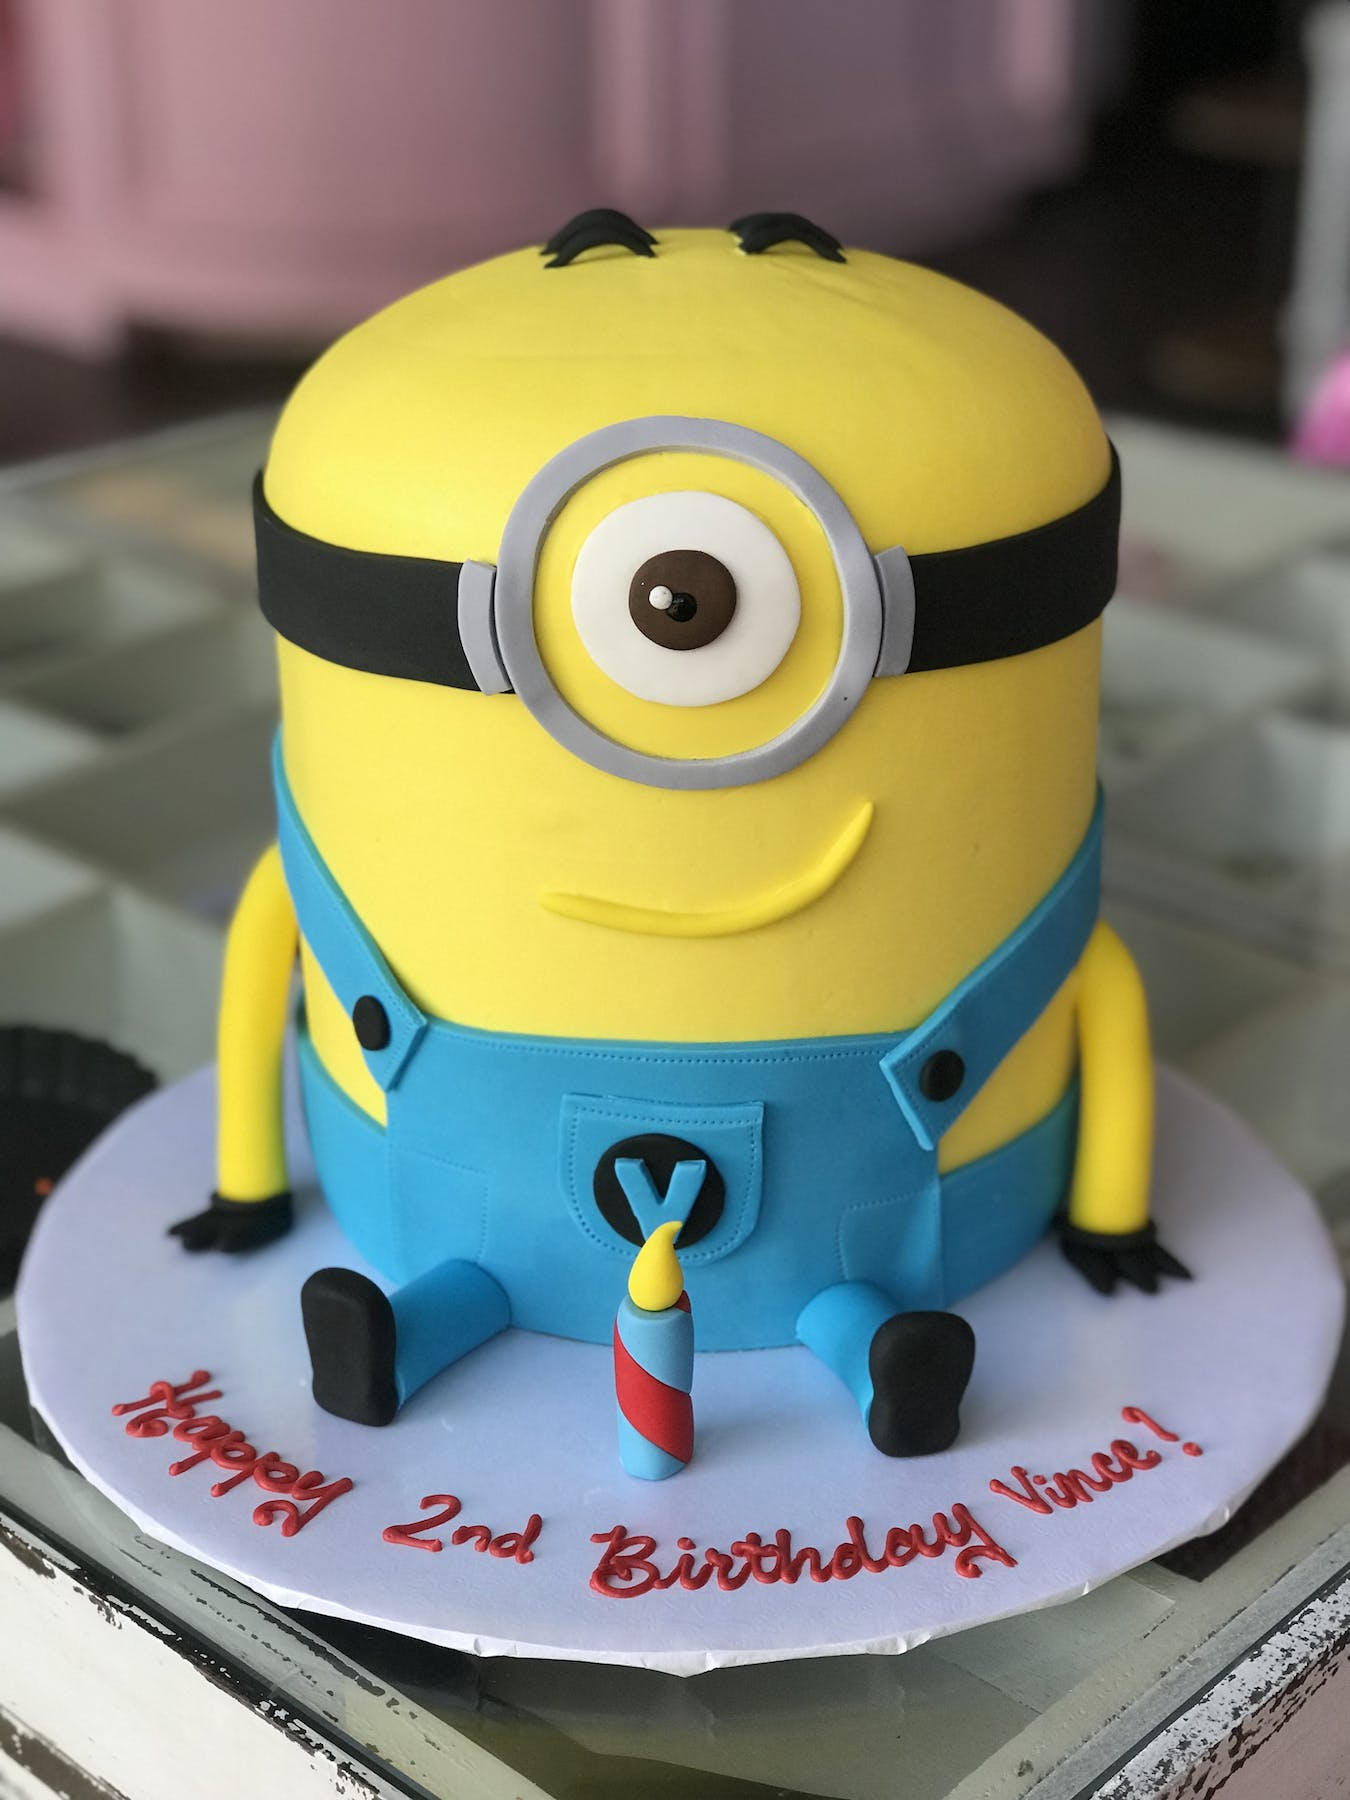 Swell Kids Cakes Michelles Patisserie Bakery And Desserts Austin Tx Funny Birthday Cards Online Fluifree Goldxyz